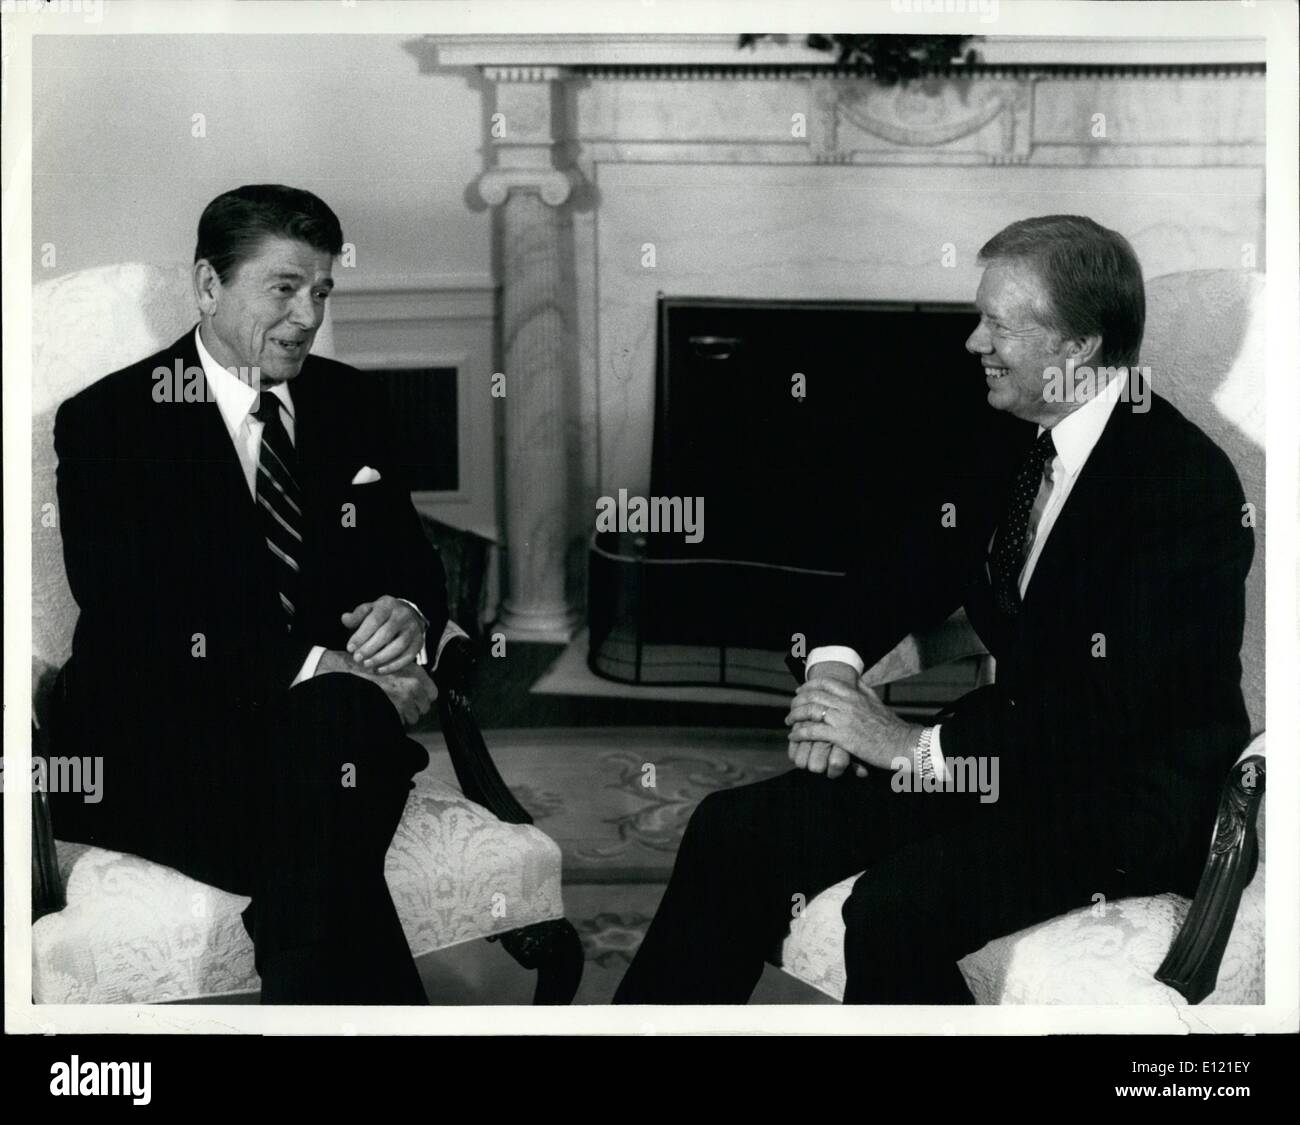 reagan vs carter Reading pipes's op-ed, i'm reminded why reagan was called the teflon president, while carter seemed covered in velcro the article begins by recalling the single american use of military force against iran in the 1980s - carter's failed attempt to rescue the hostages.